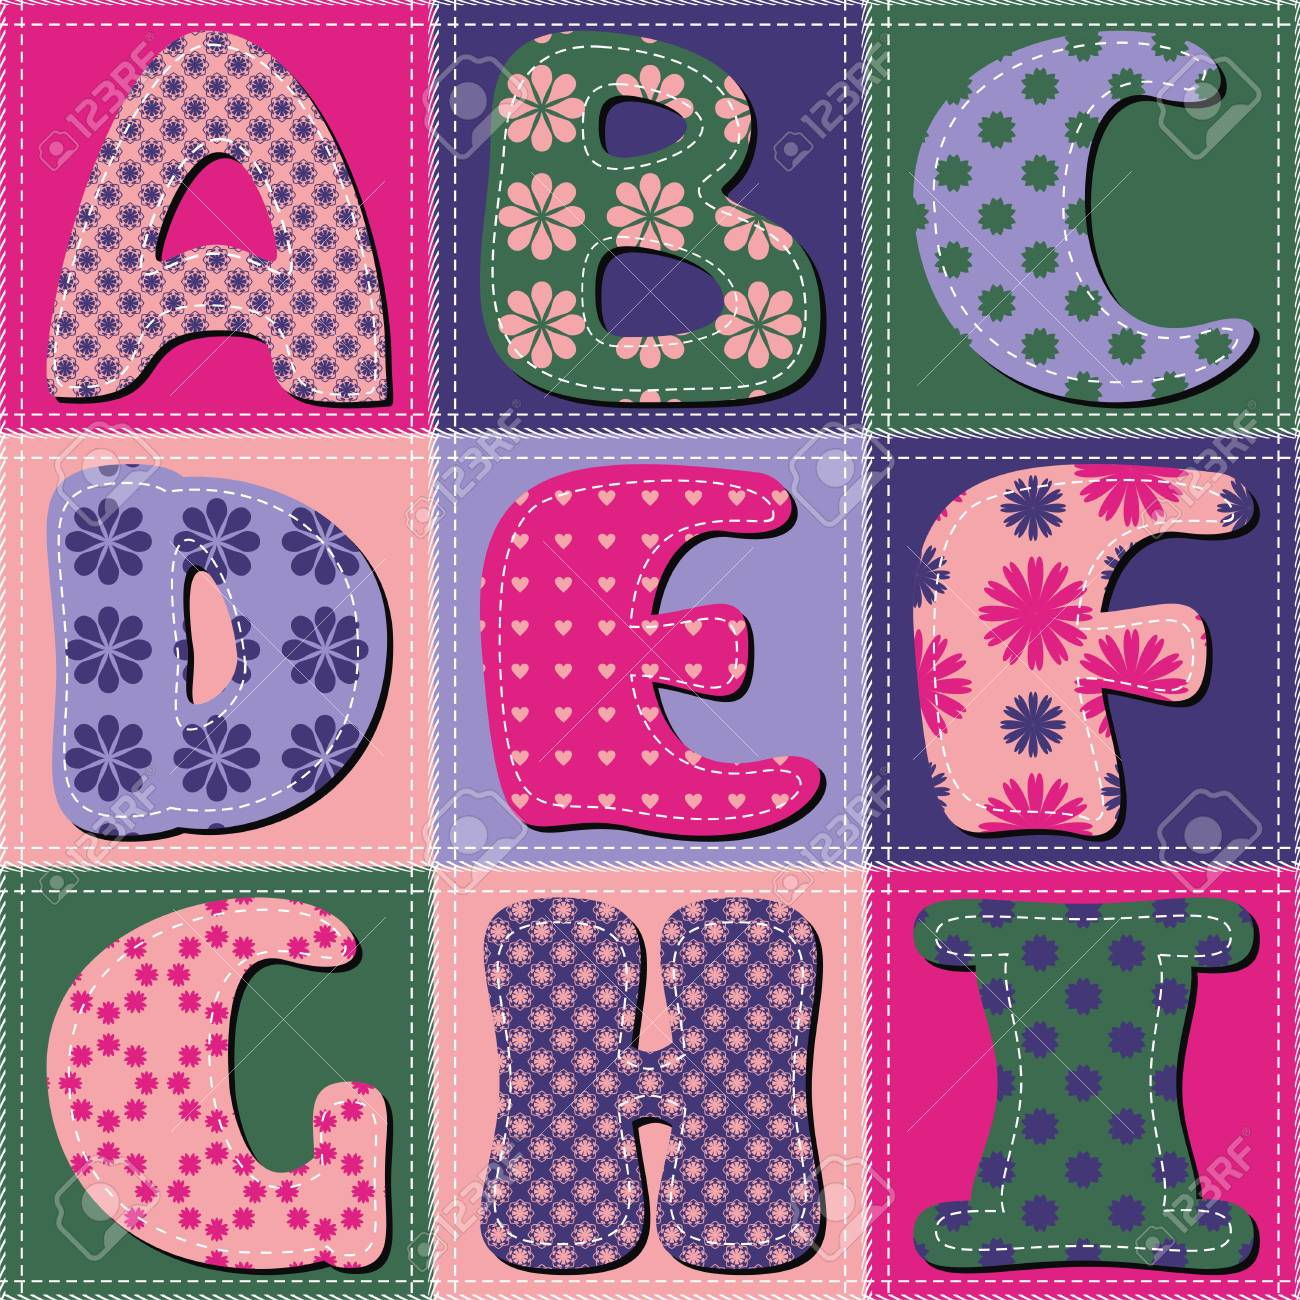 Scrapbook Letters On Patchwork Background Royalty Free Cliparts